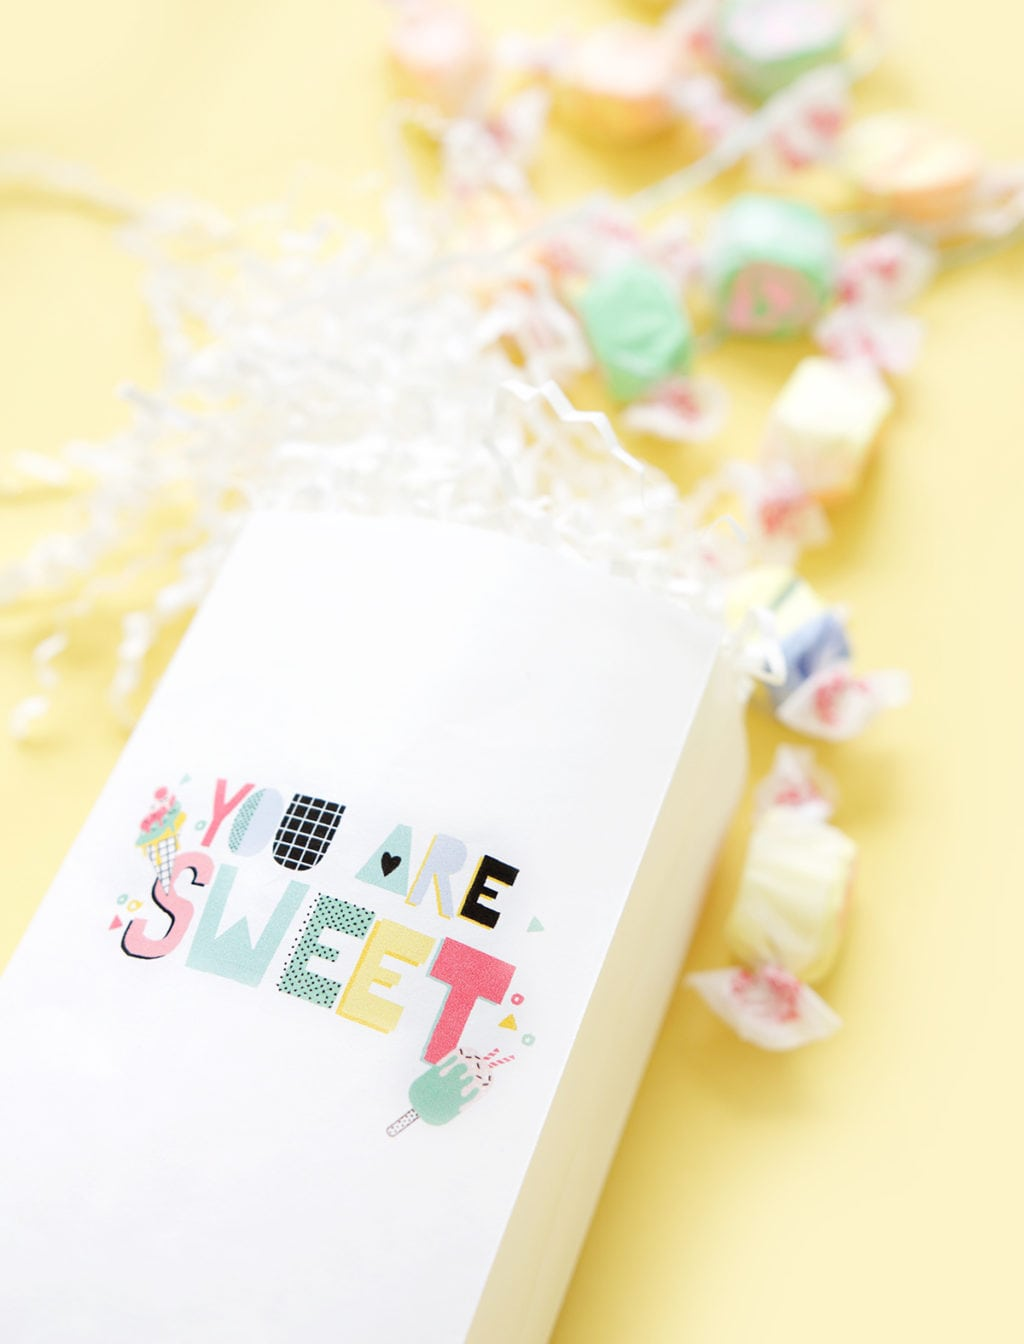 Printers are great for boring work but they are more fun when you use them to print your own treat bags for any occasion. Follow this simple video tutorial and learn how!